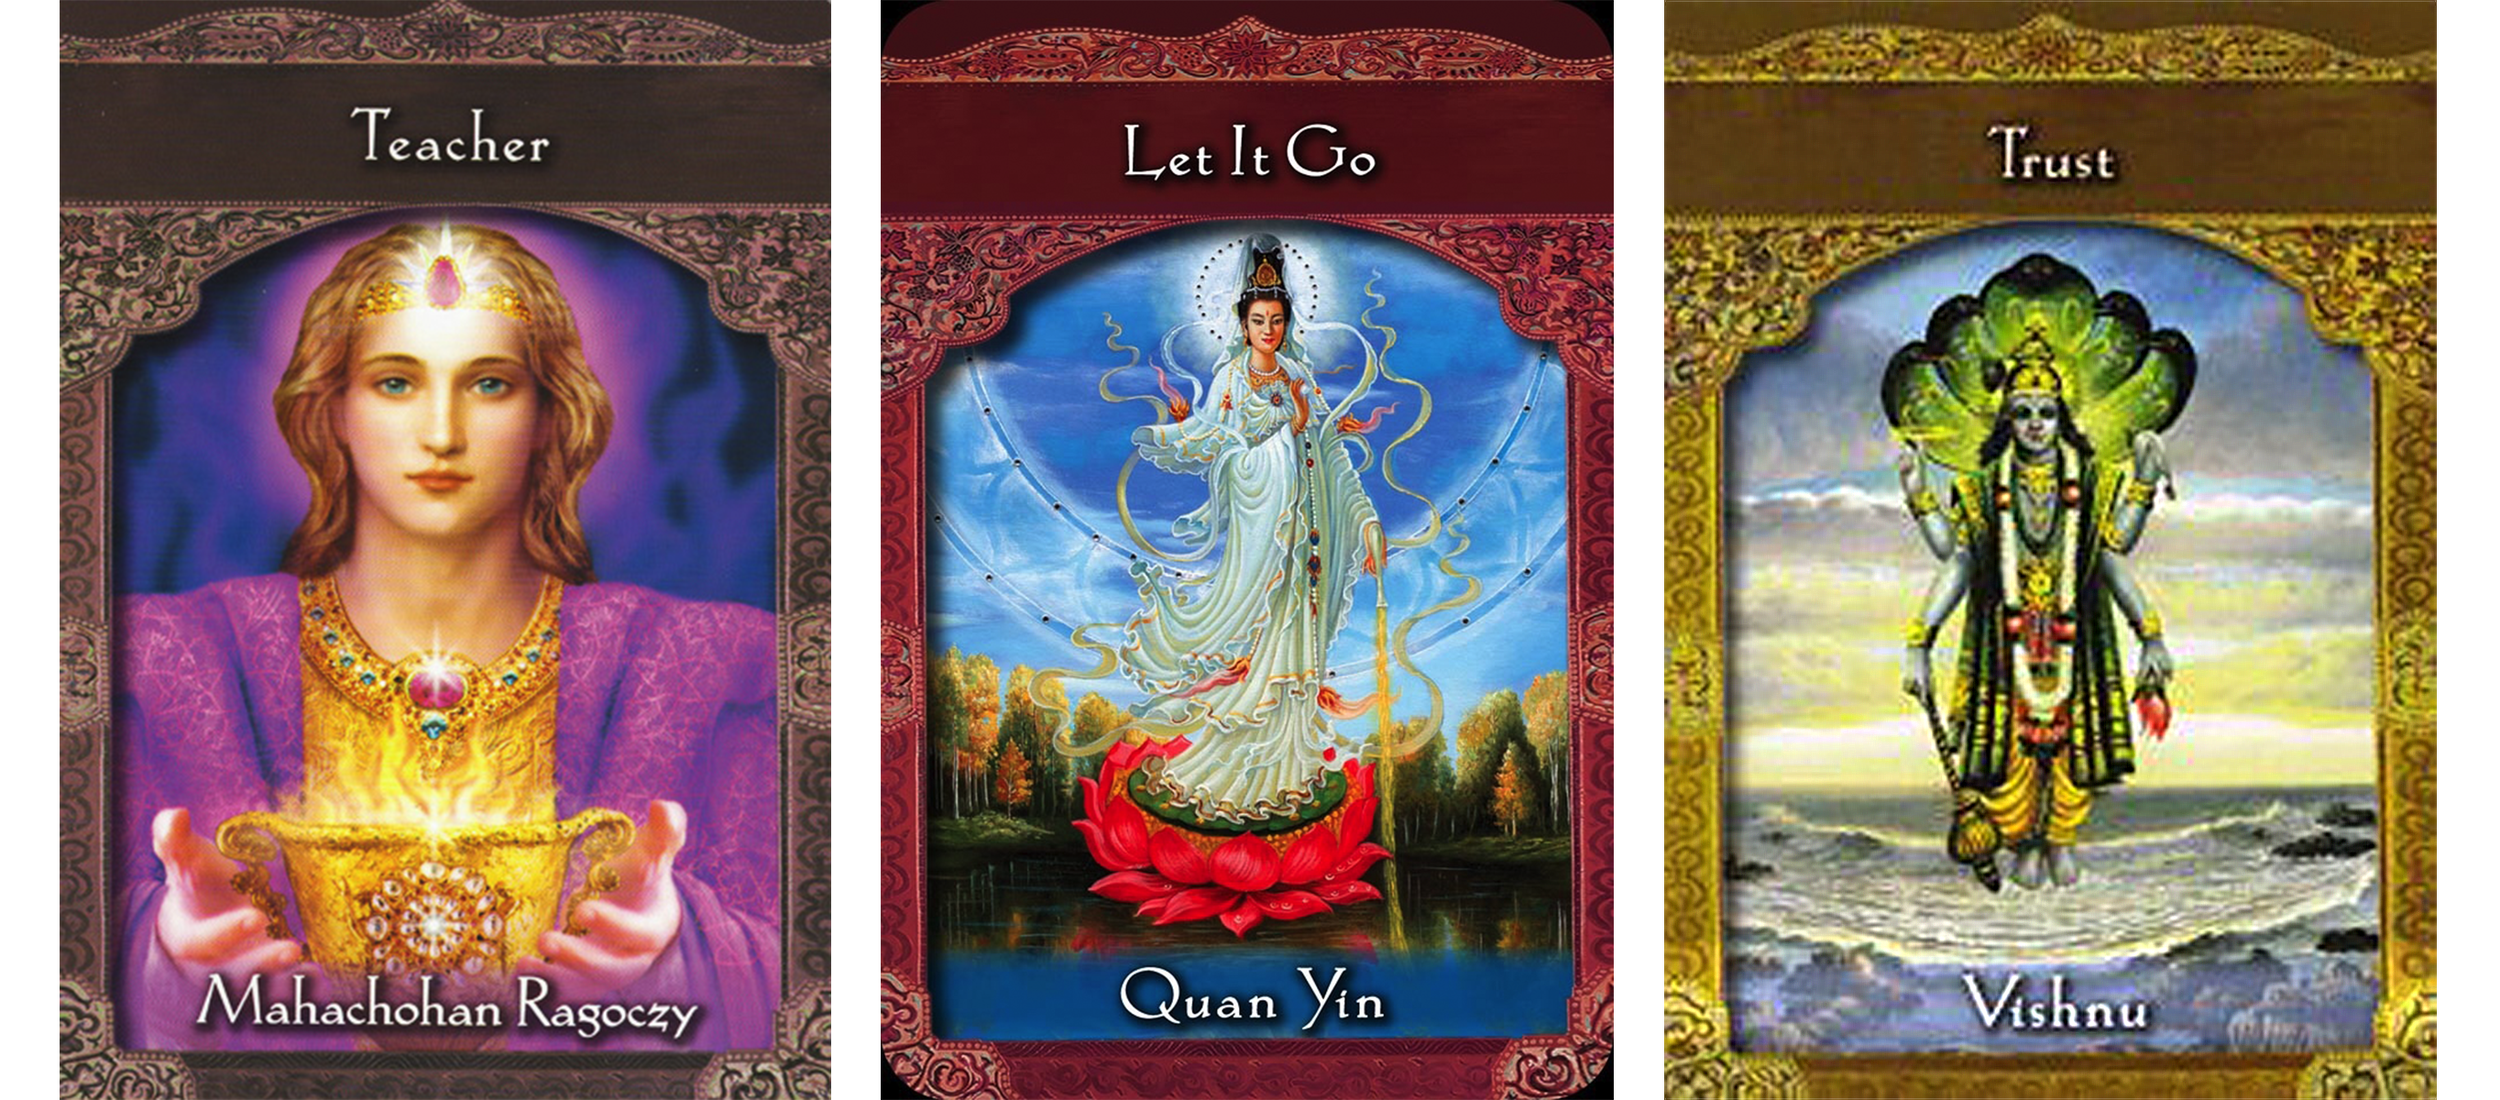 An ascened master three card divination layout: The Mahachohan Ragoczy indicating Teacher, Quan Yin pointing to Let It Go and Vishnu saying to Trust